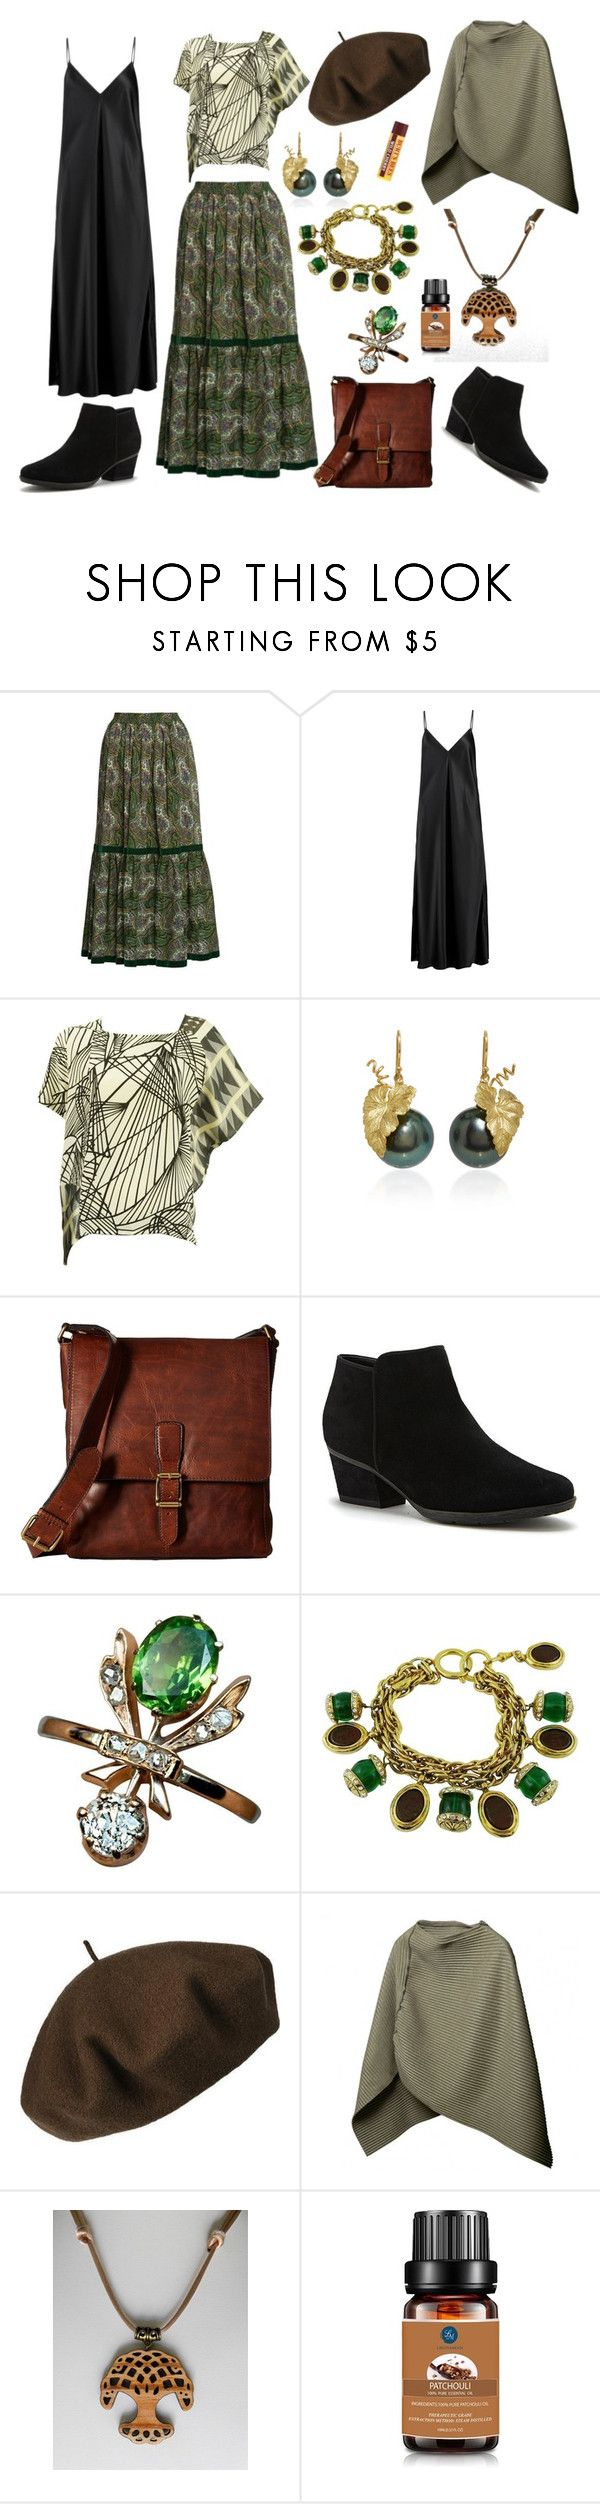 """""""everyday"""" by moestesoh ❤ liked on Polyvore featuring Yves Saint Laurent, E L L E R Y, Dries Van Noten, Frye, Steve Madden, Chanel, Betmar and Design House Stockholm"""